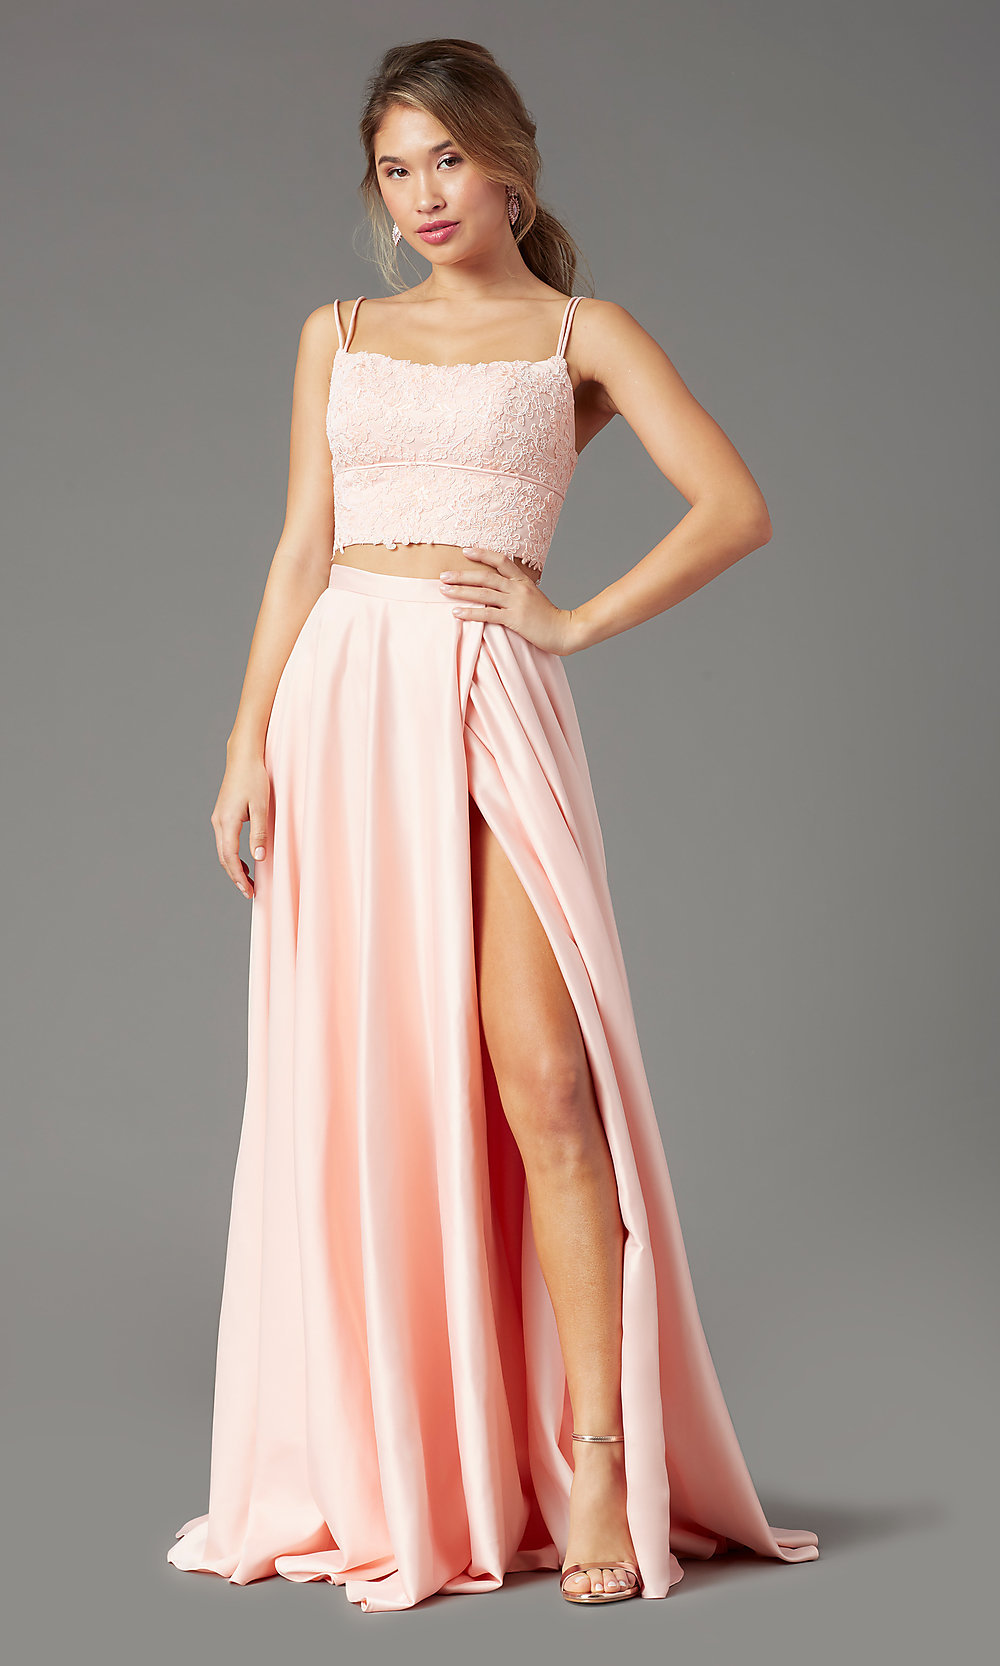 Pastel Two Piece Long Prom Dress Promgirl